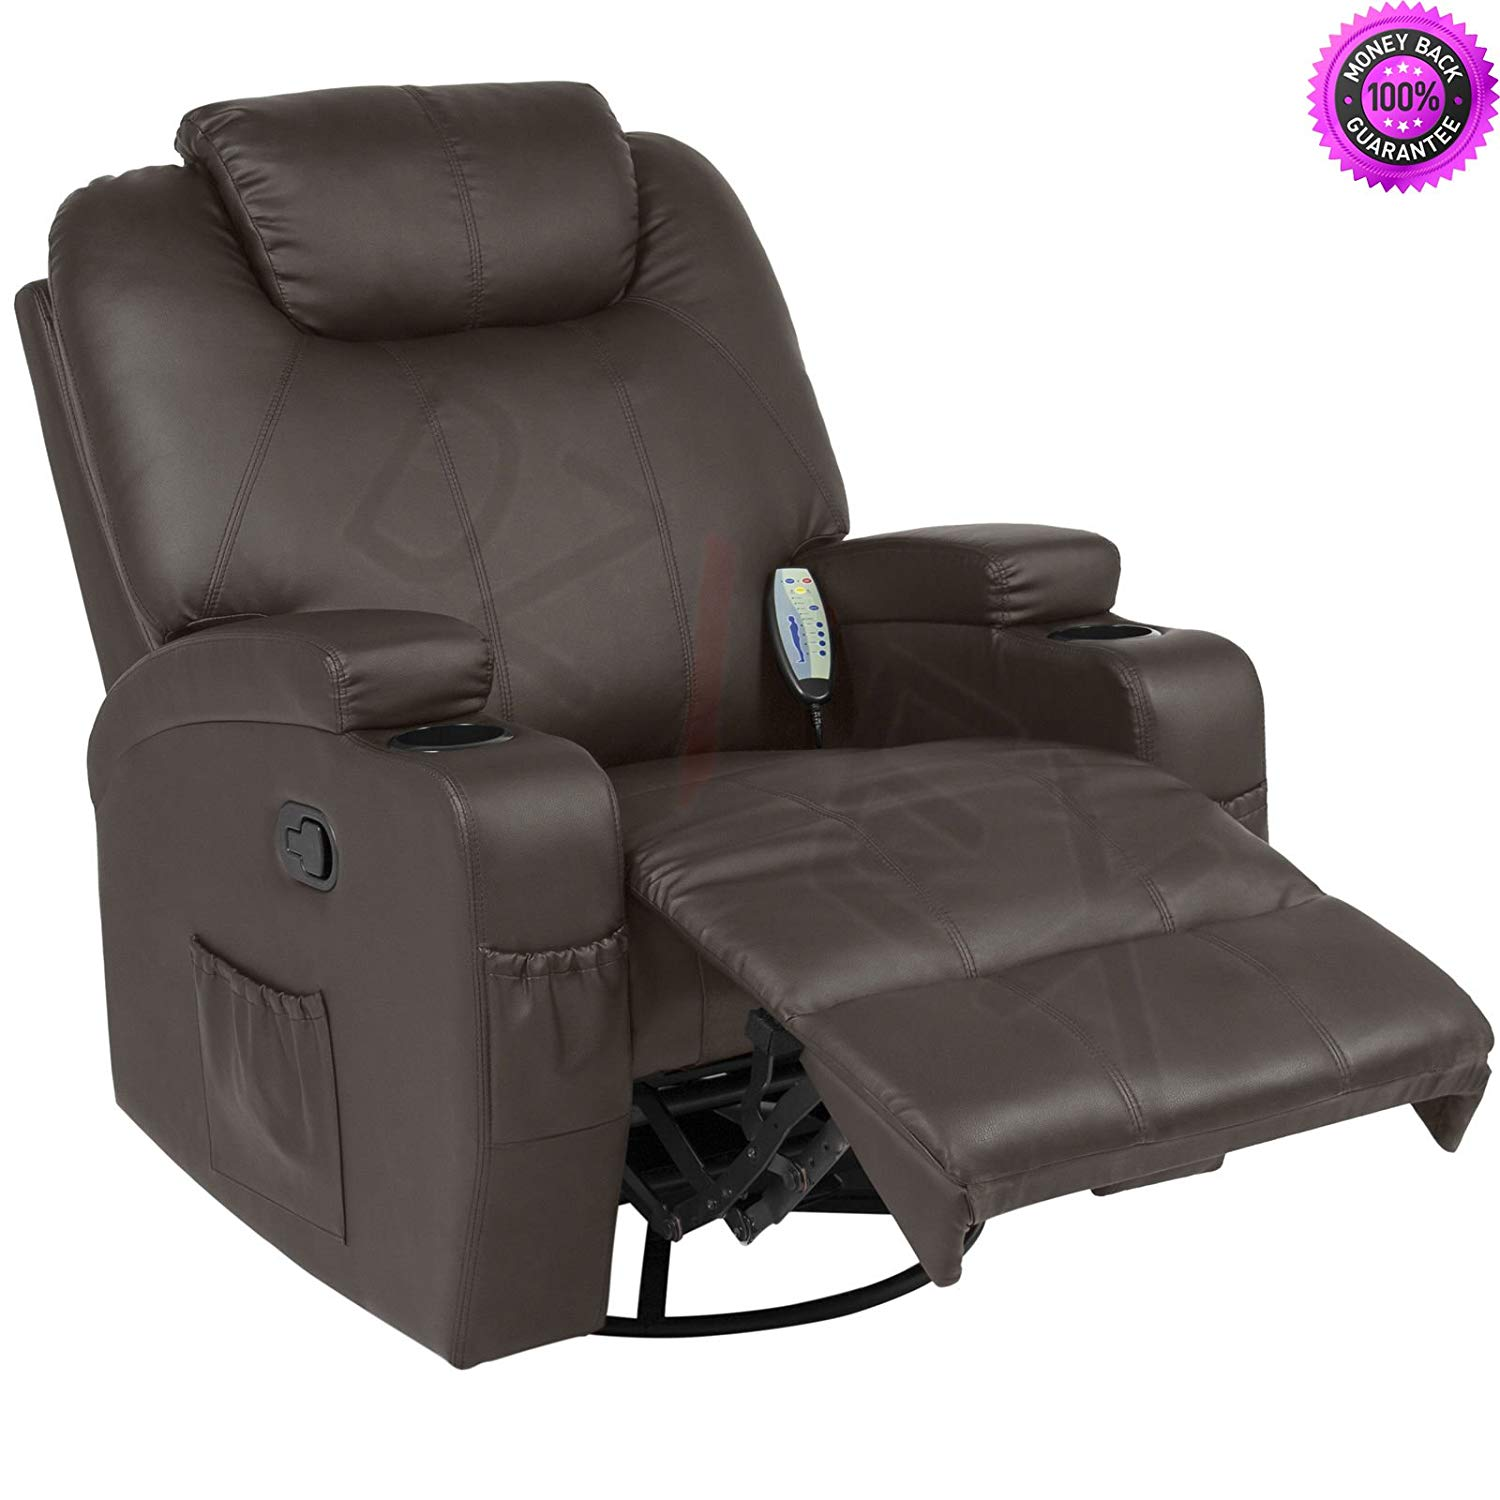 back massage chairs for sale chair gym reviews 2018 cheap full body find get quotations dzvex executive swivel recliner w 5 heat modes 2 cup holders 92lbs